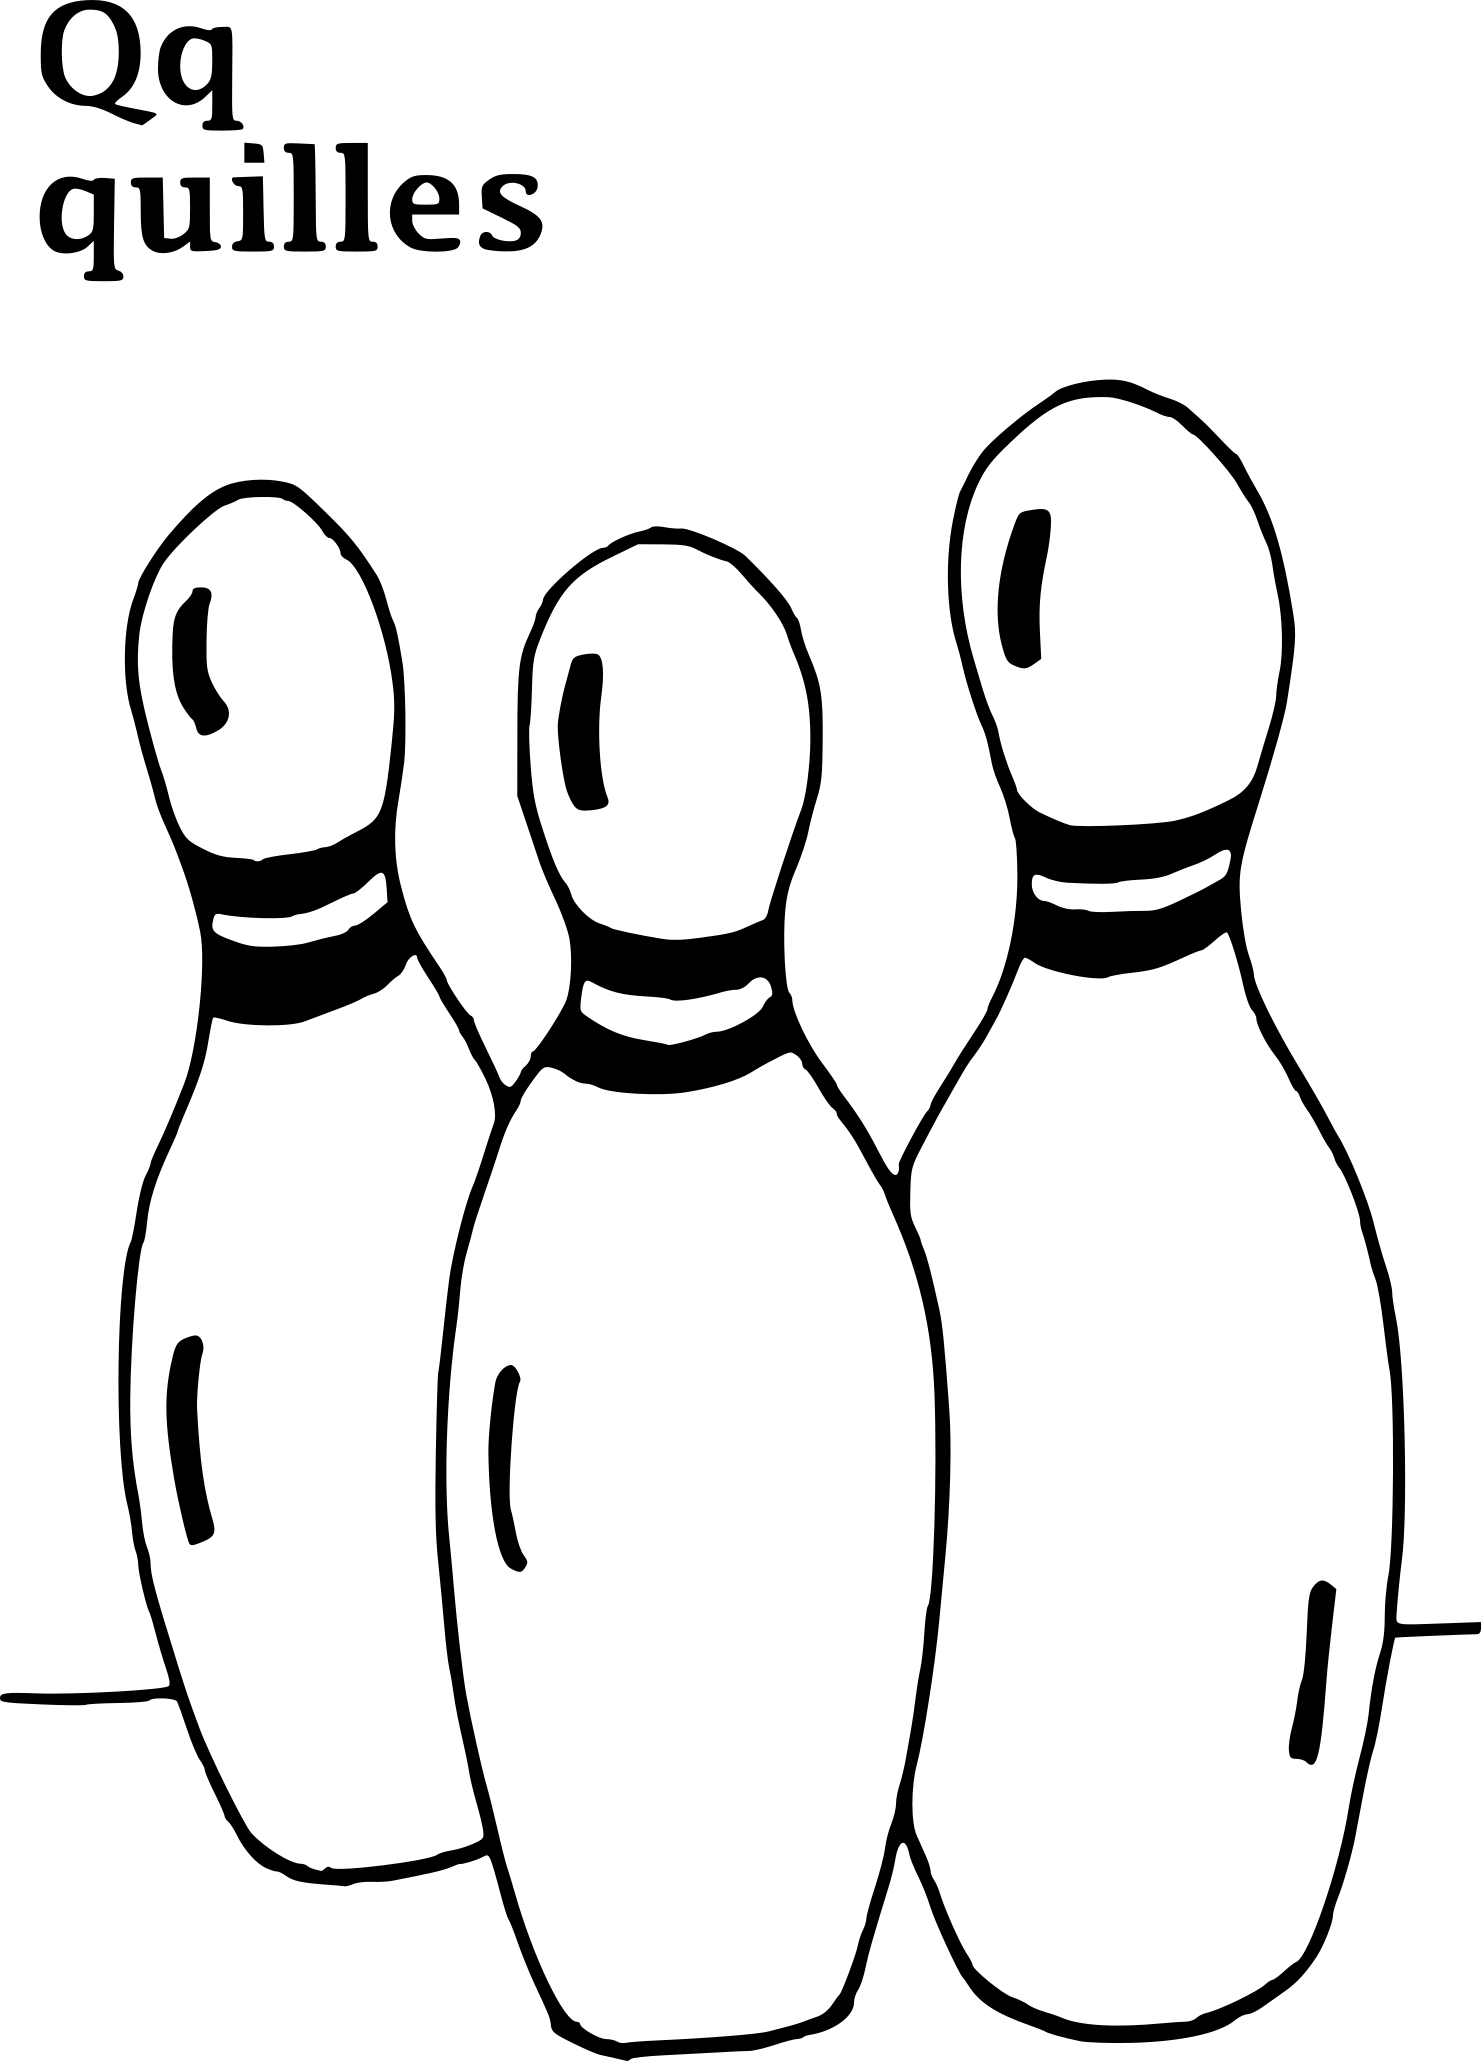 Coloriage quilles bowling